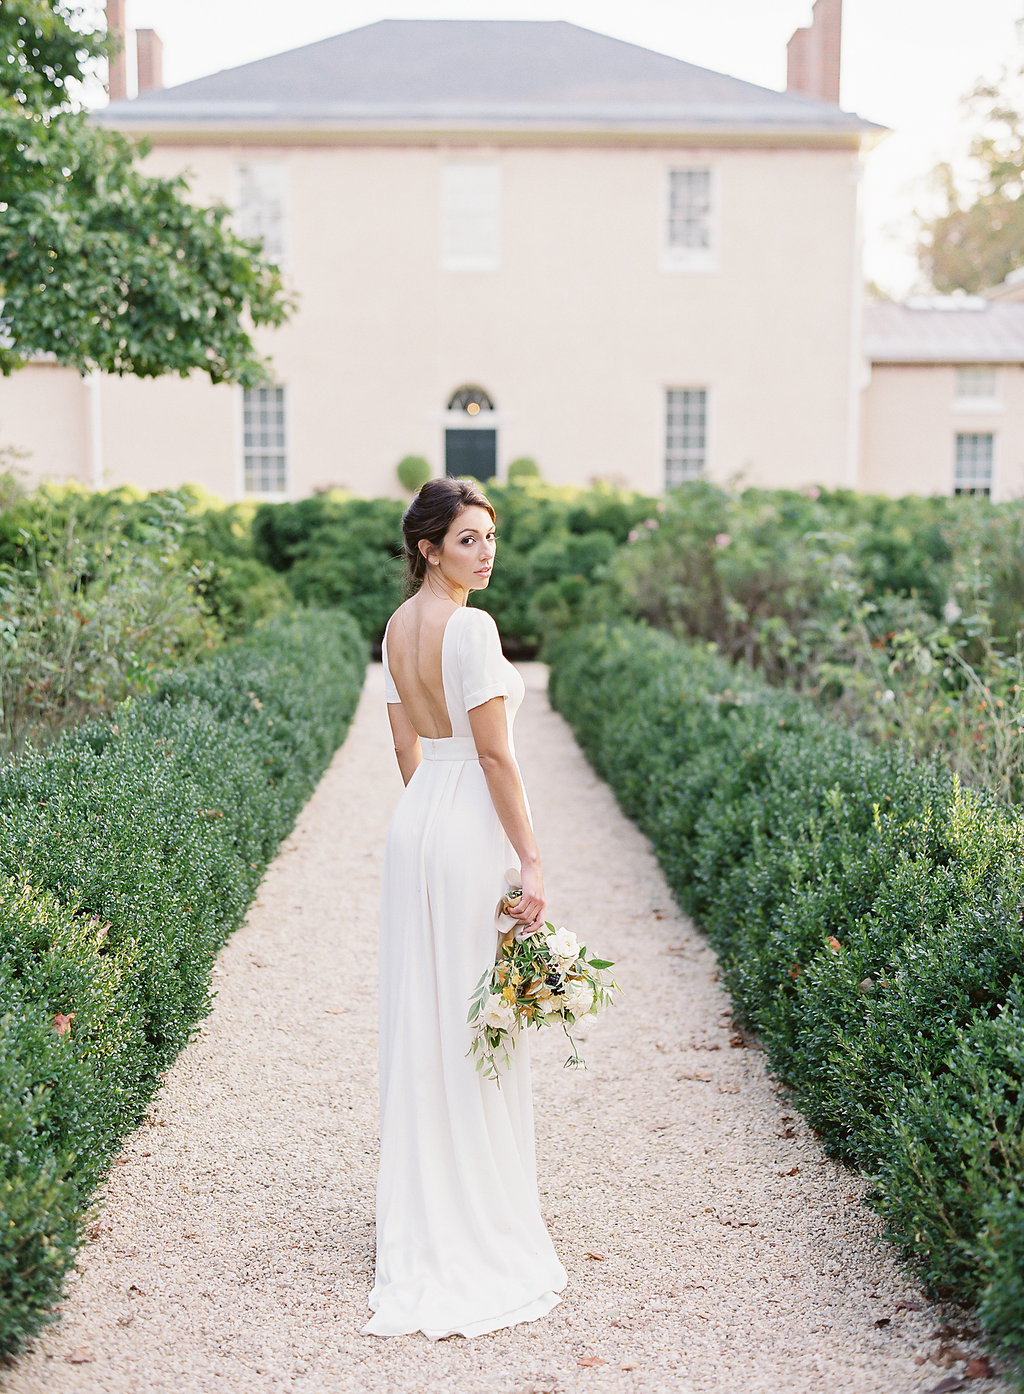 French Inspired Fall Wedding with Fine Art Destination Wedding Planner East Made Event Company and DC Film Photographer Vicki Grafton Photography at Tudor Place in Washington DC-102.jpg